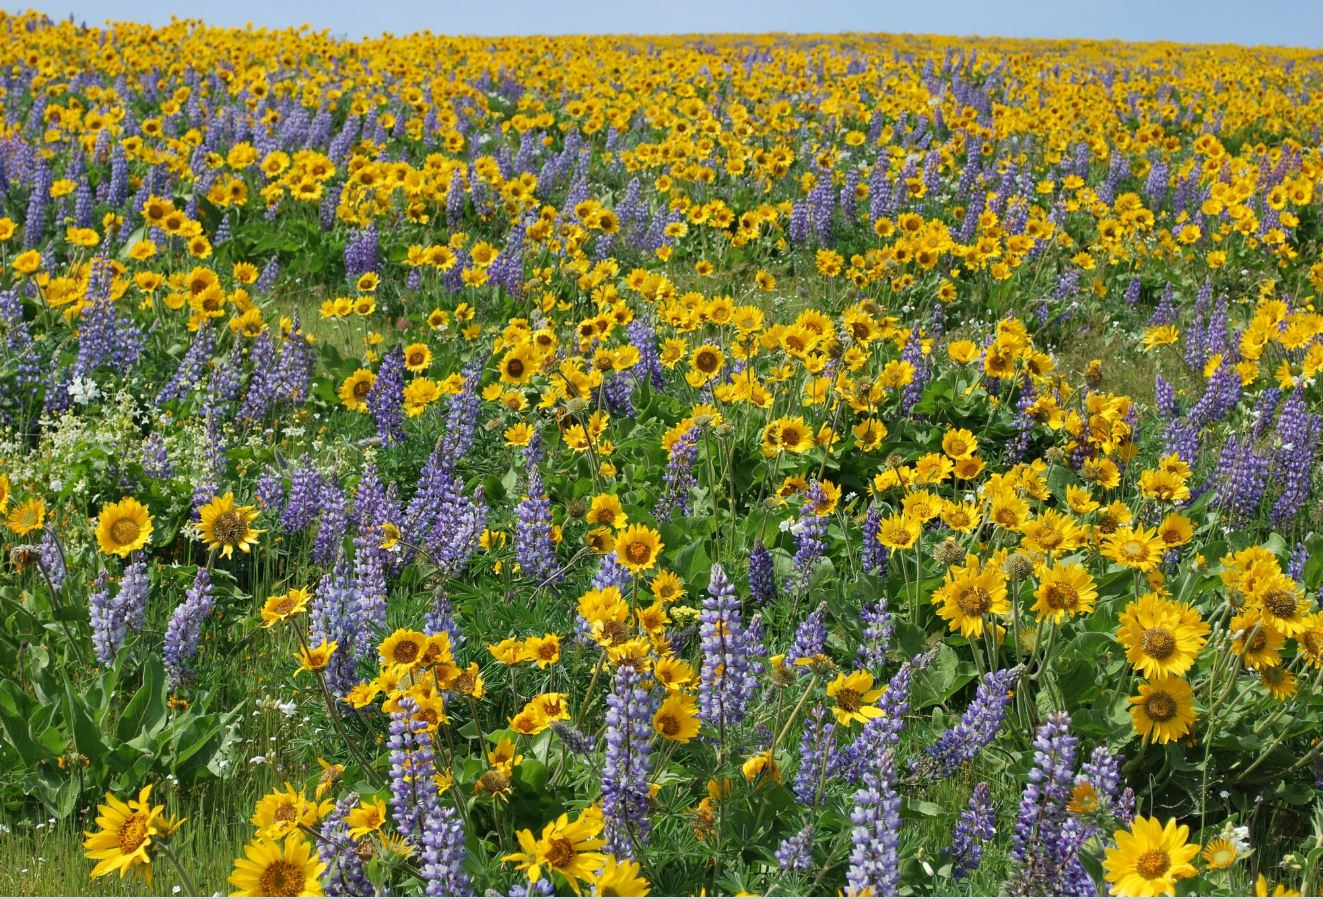 Columbia Gorge Wildflowers, Laura O. Foster